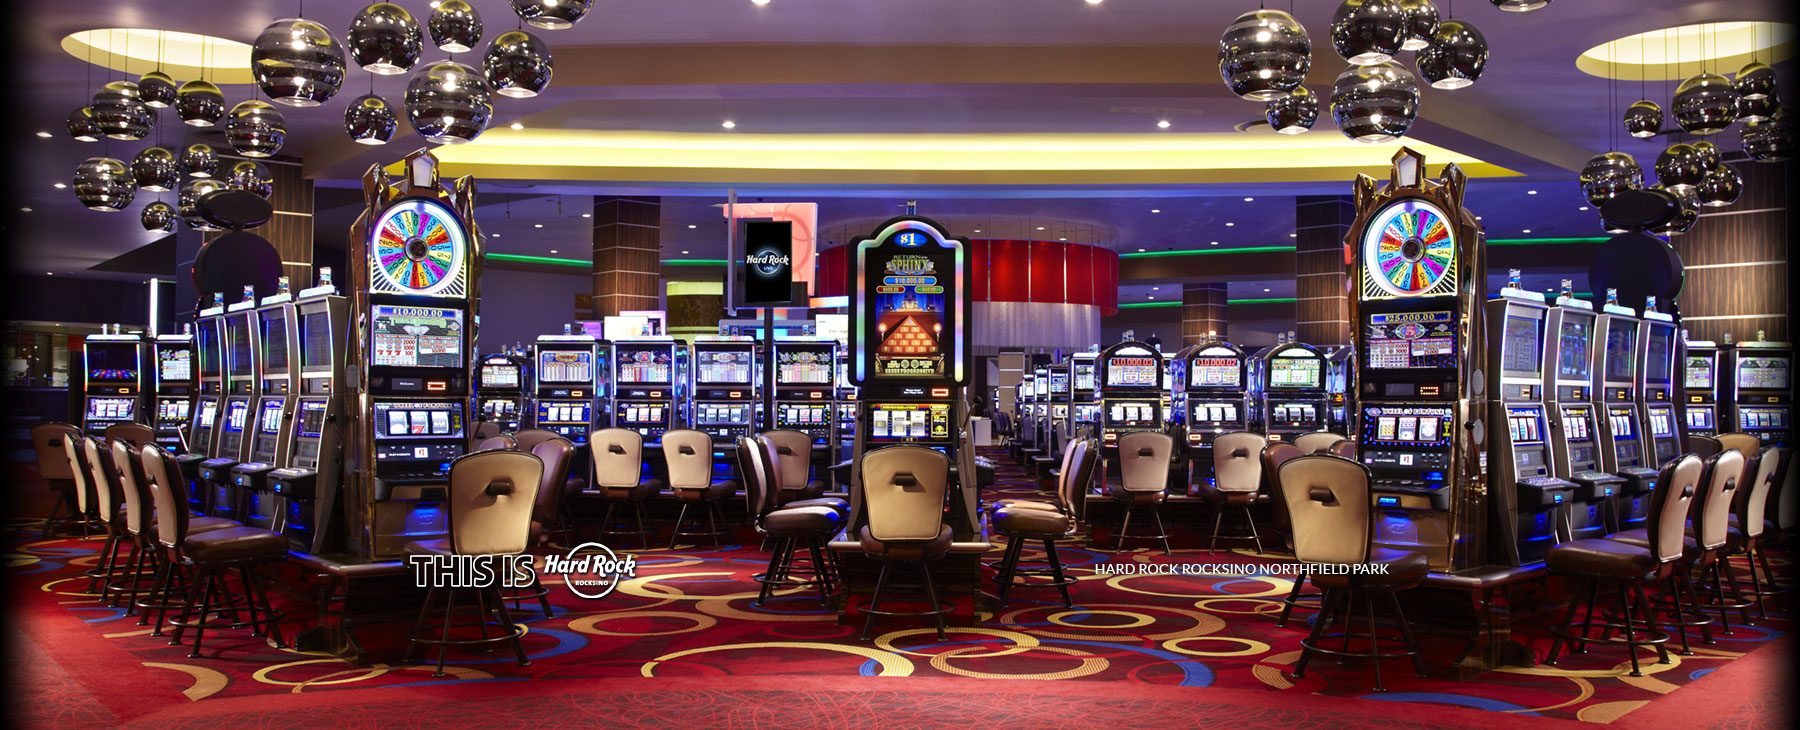 Northfield Park Rocksino